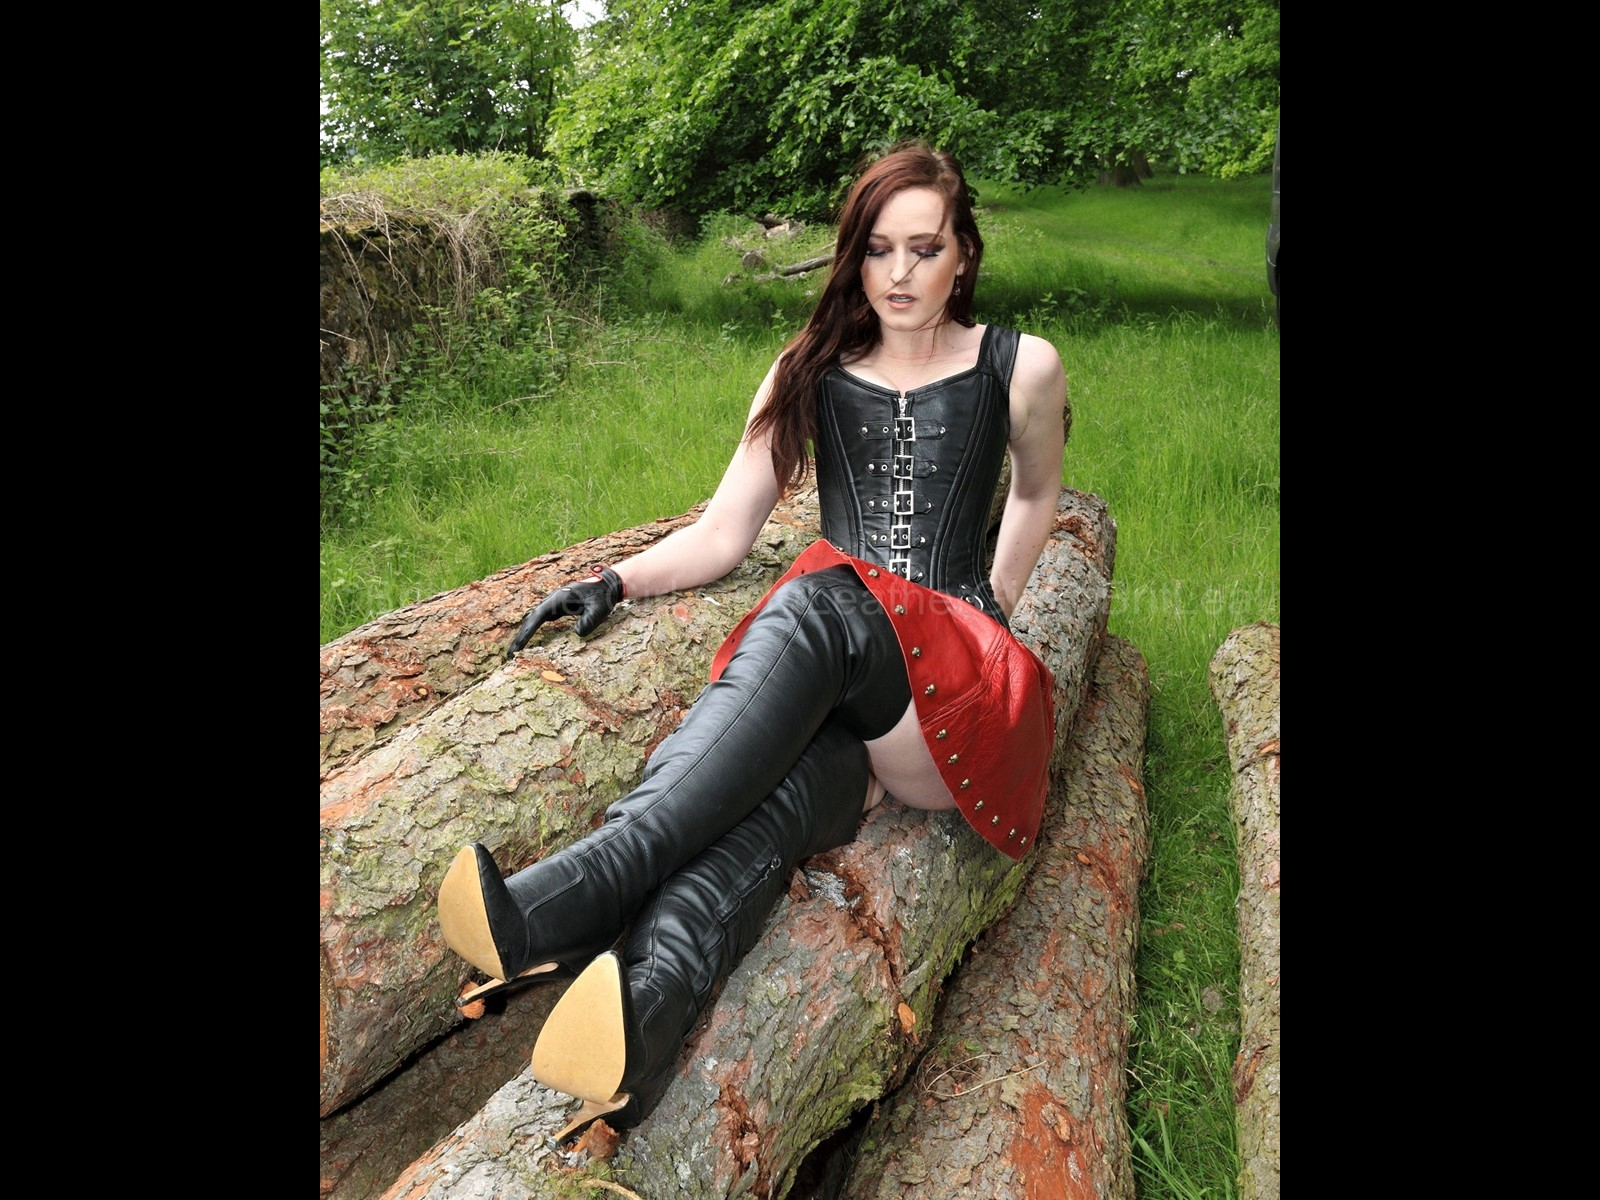 Outdoors on a log in Genuine Leather Boots and a Leather Corset with Buckles and Skirt